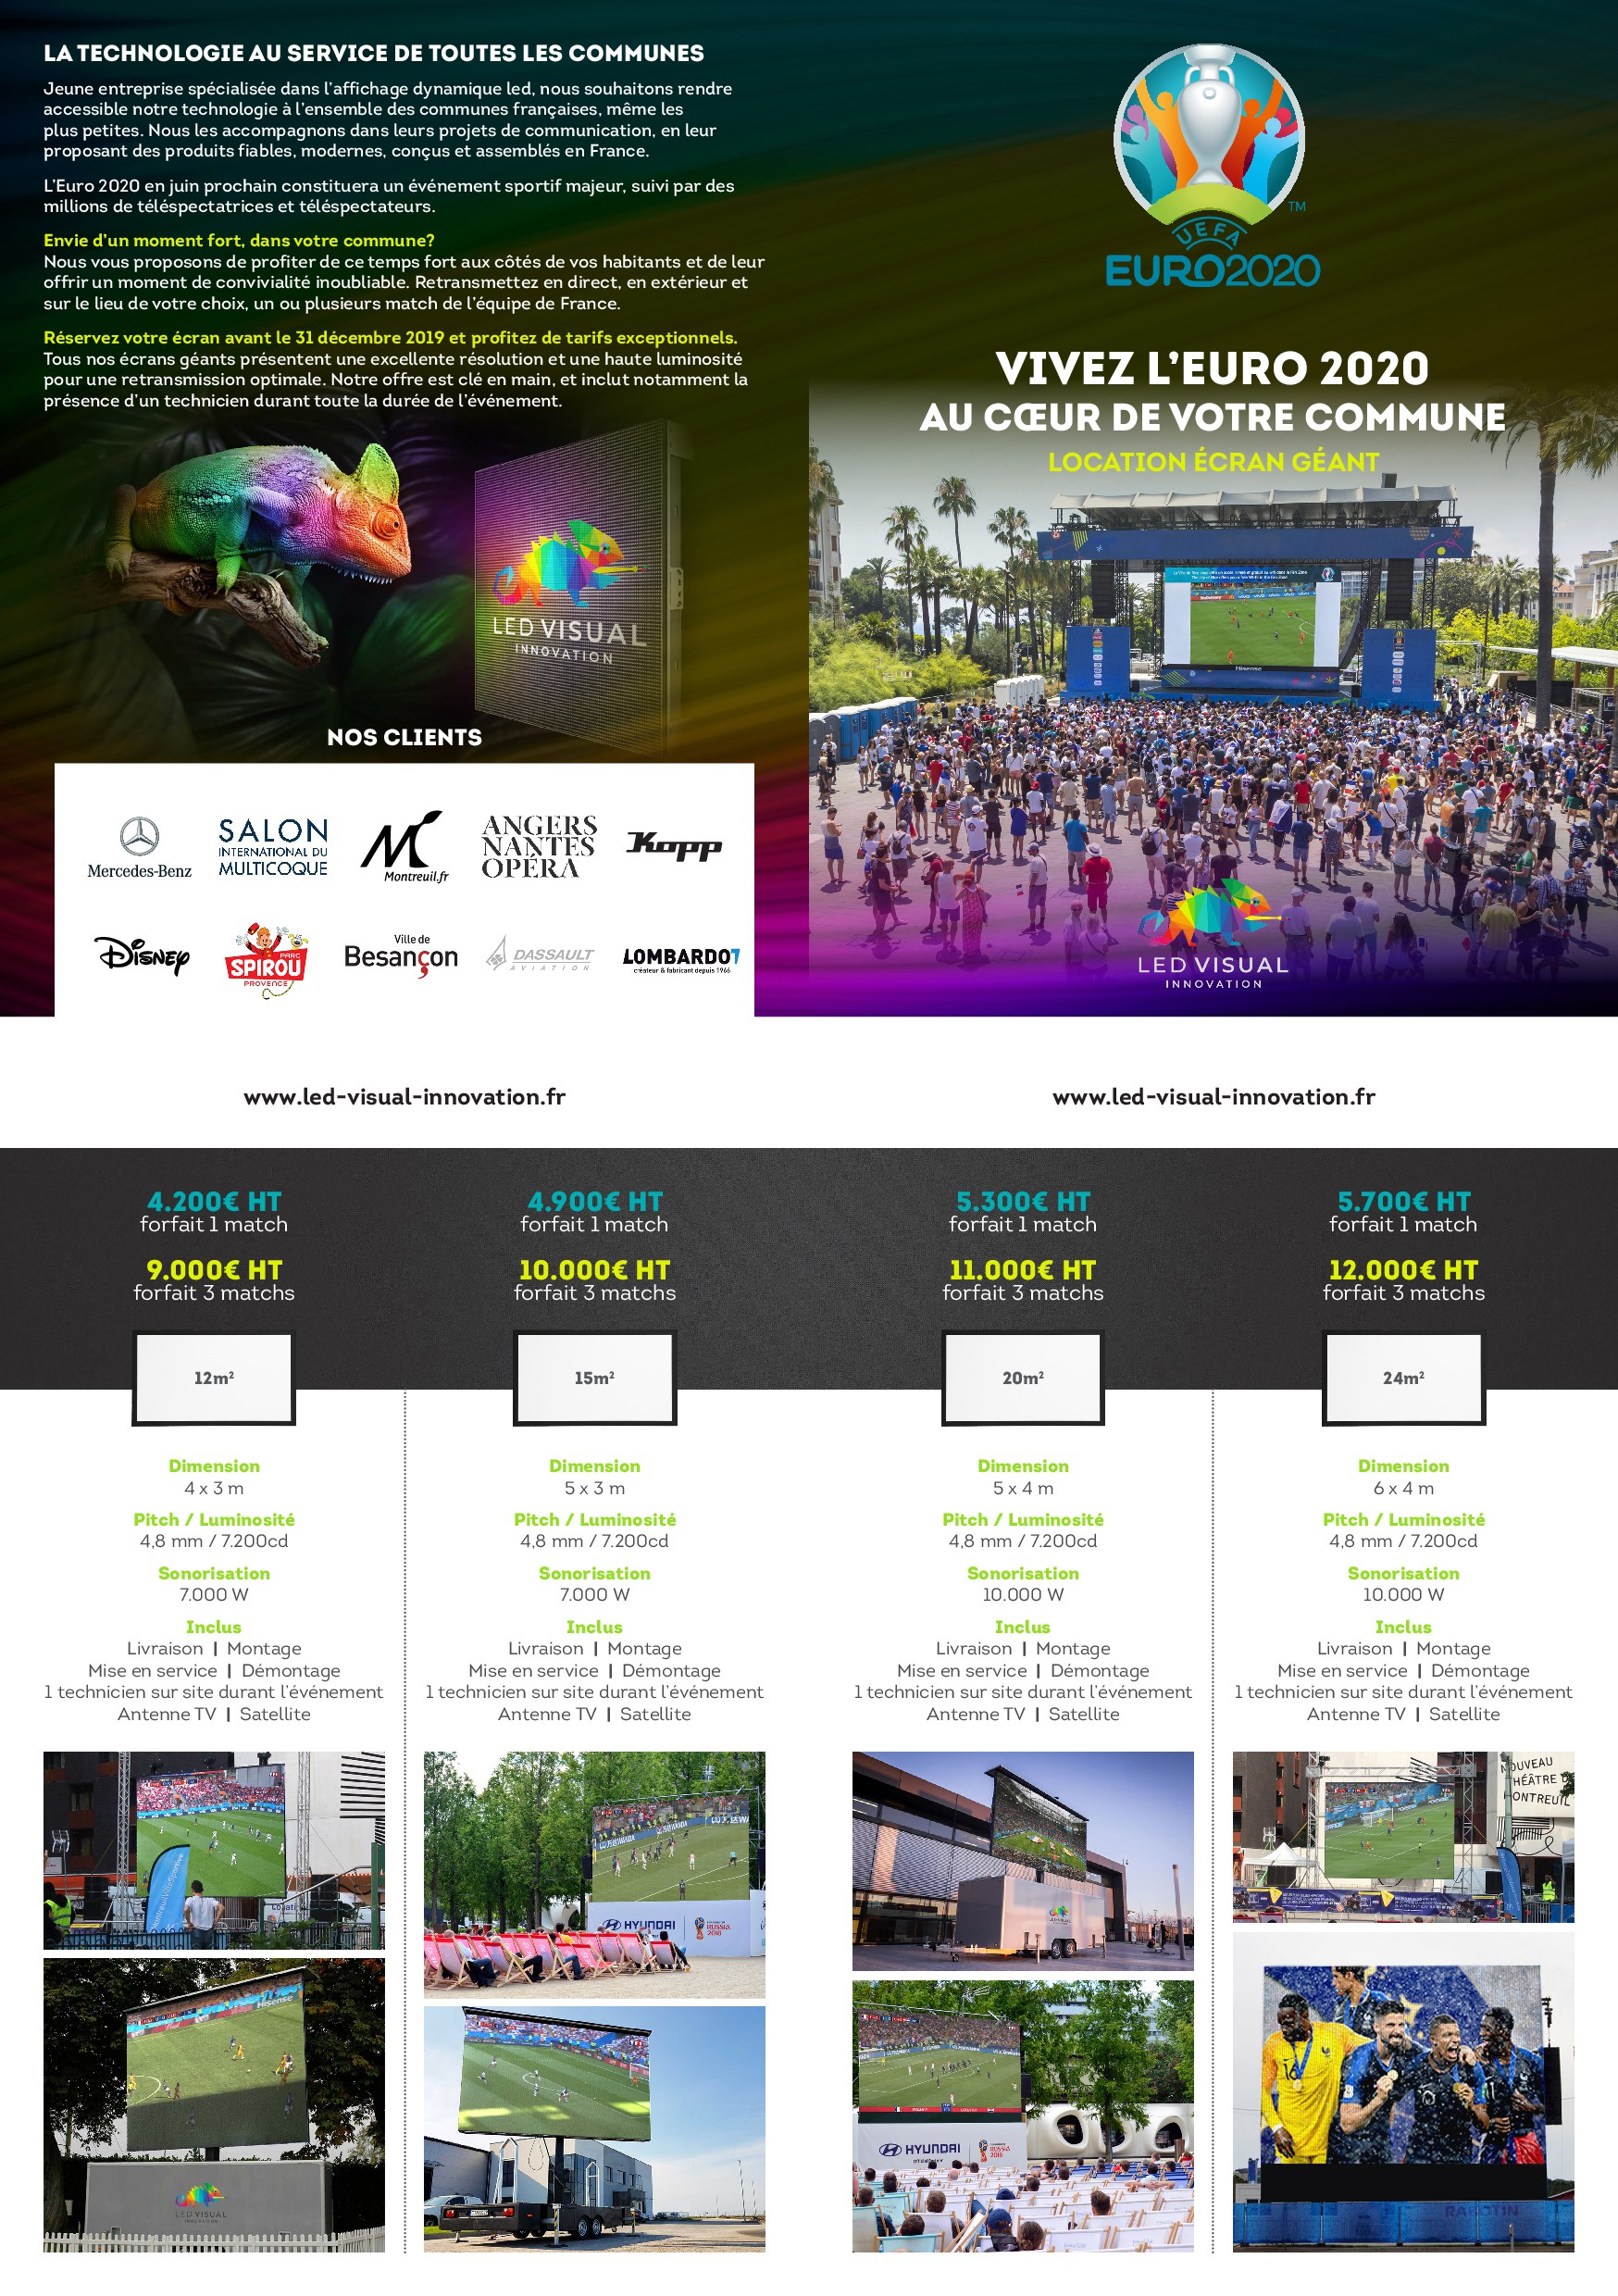 Sales brochure - Euro 2020 - rental giant led screen